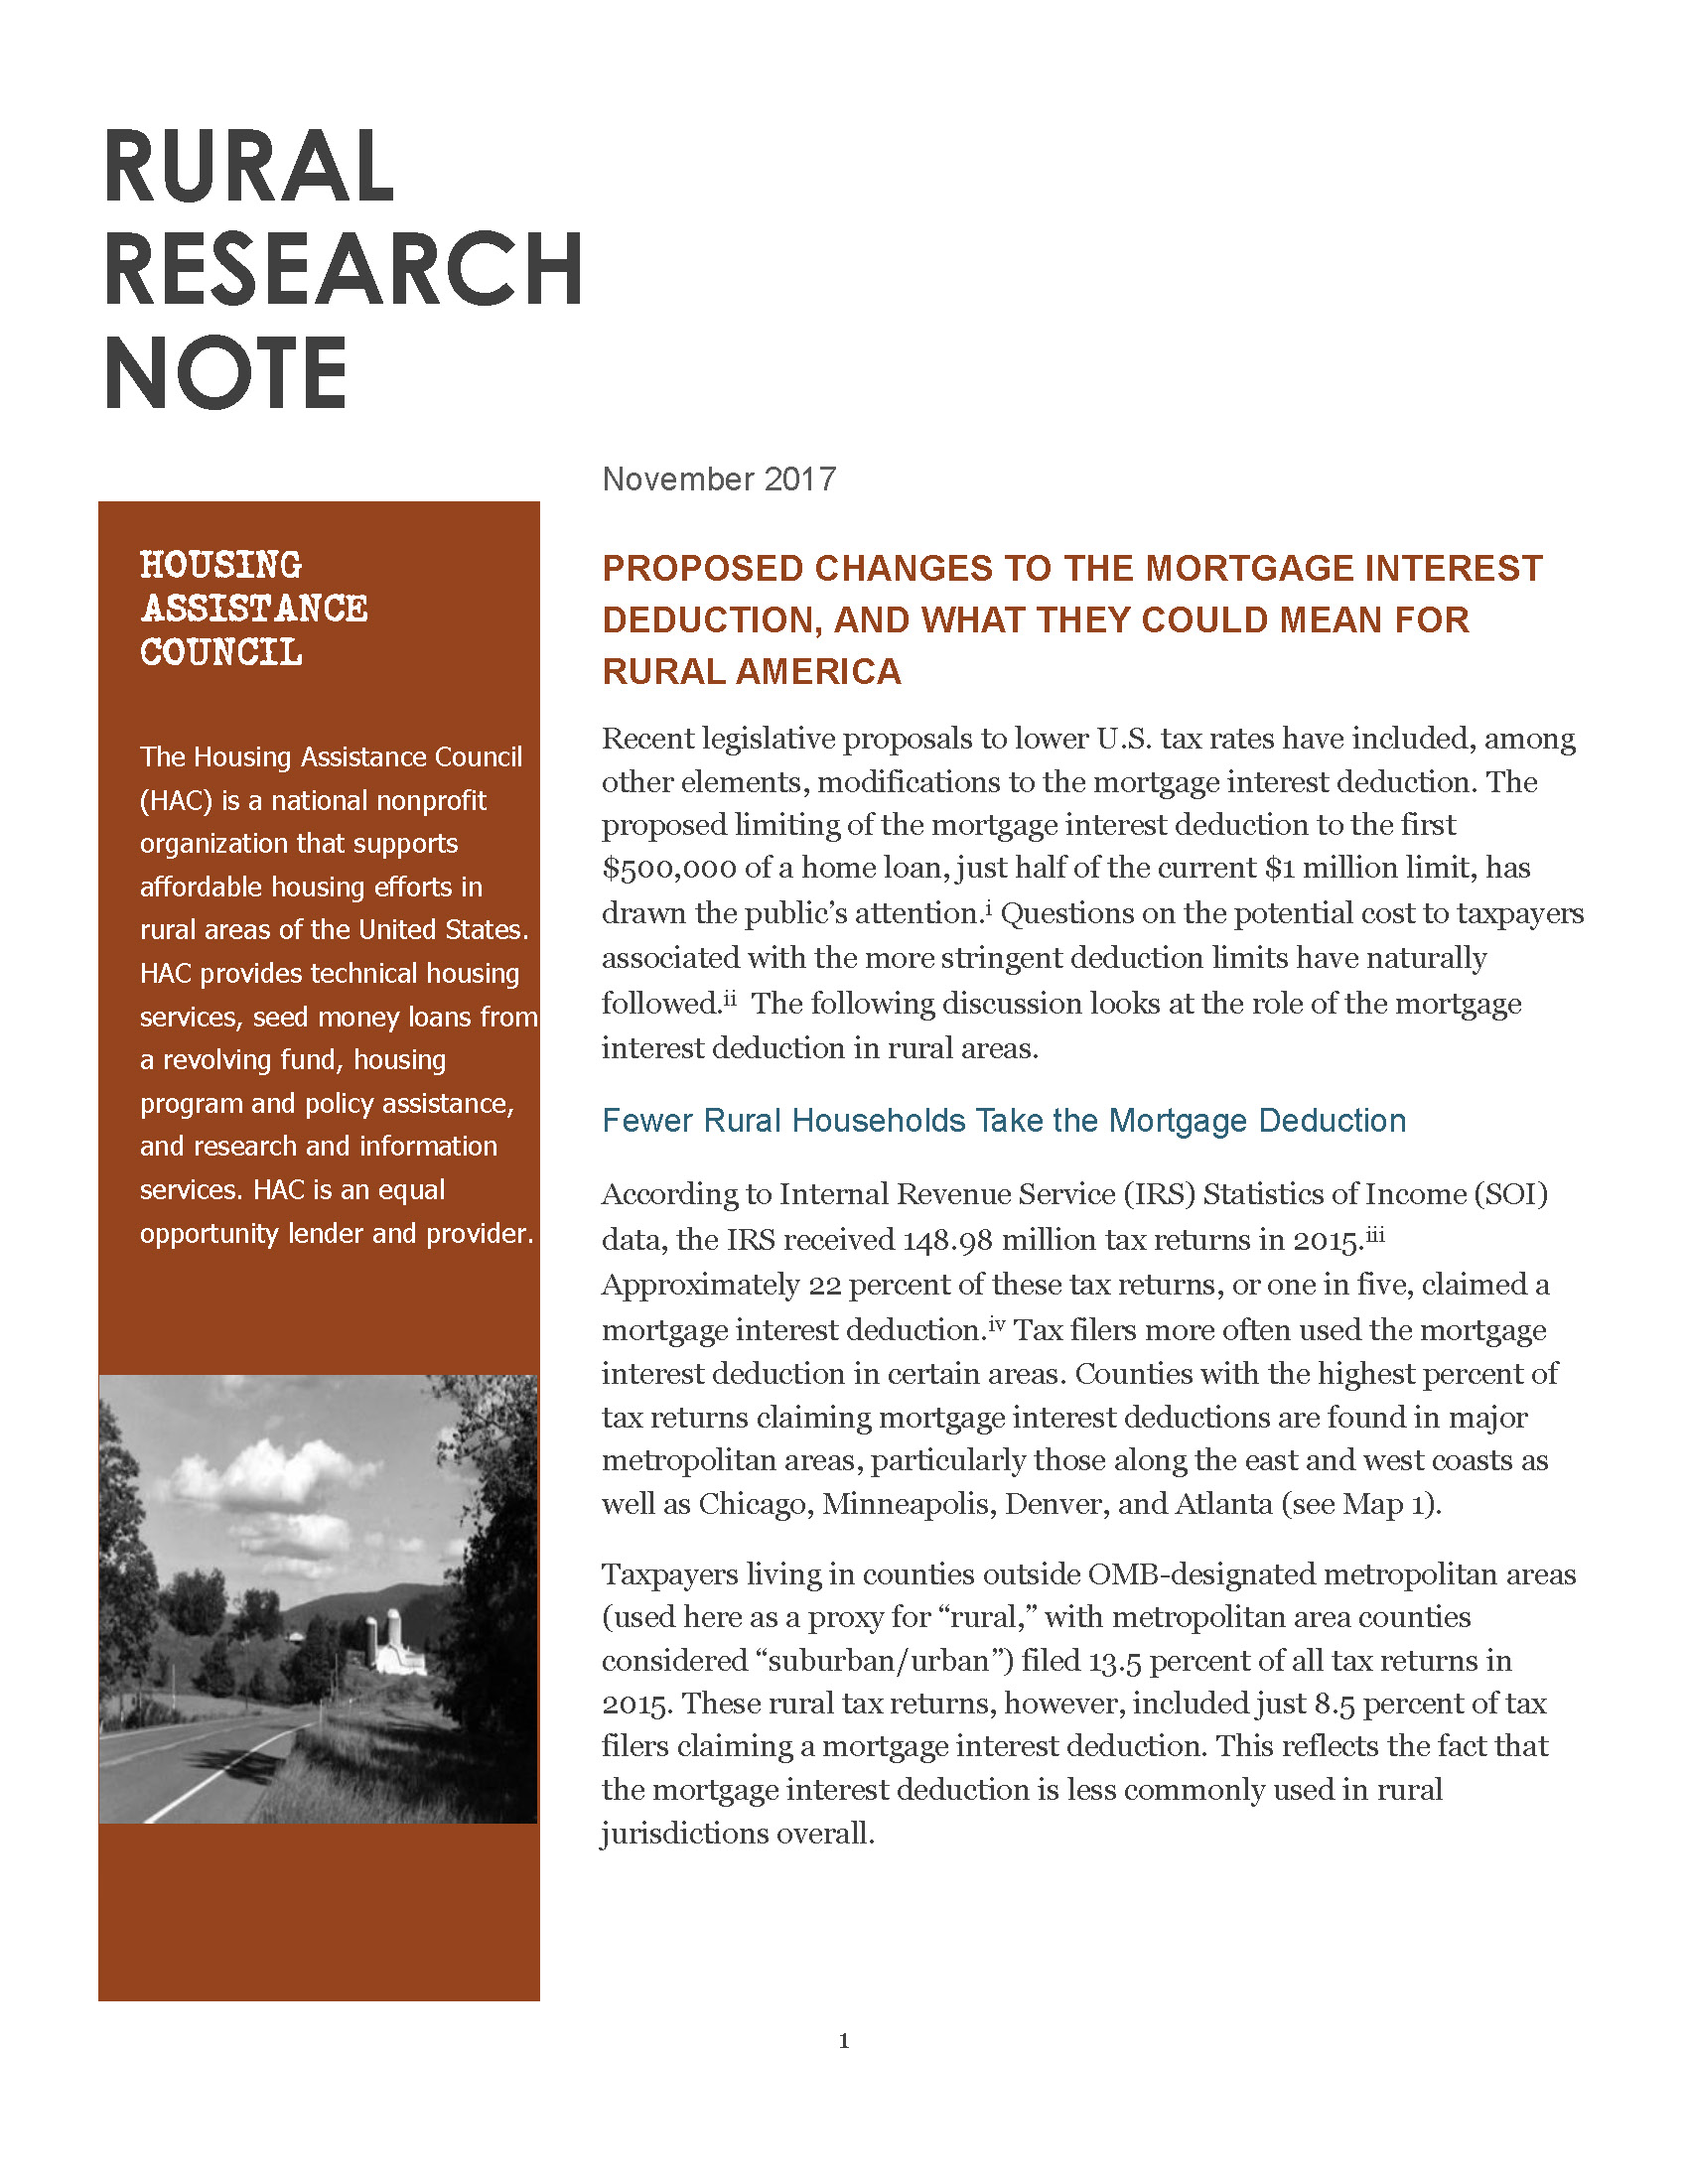 Mortgage Interest Deduction Research Note